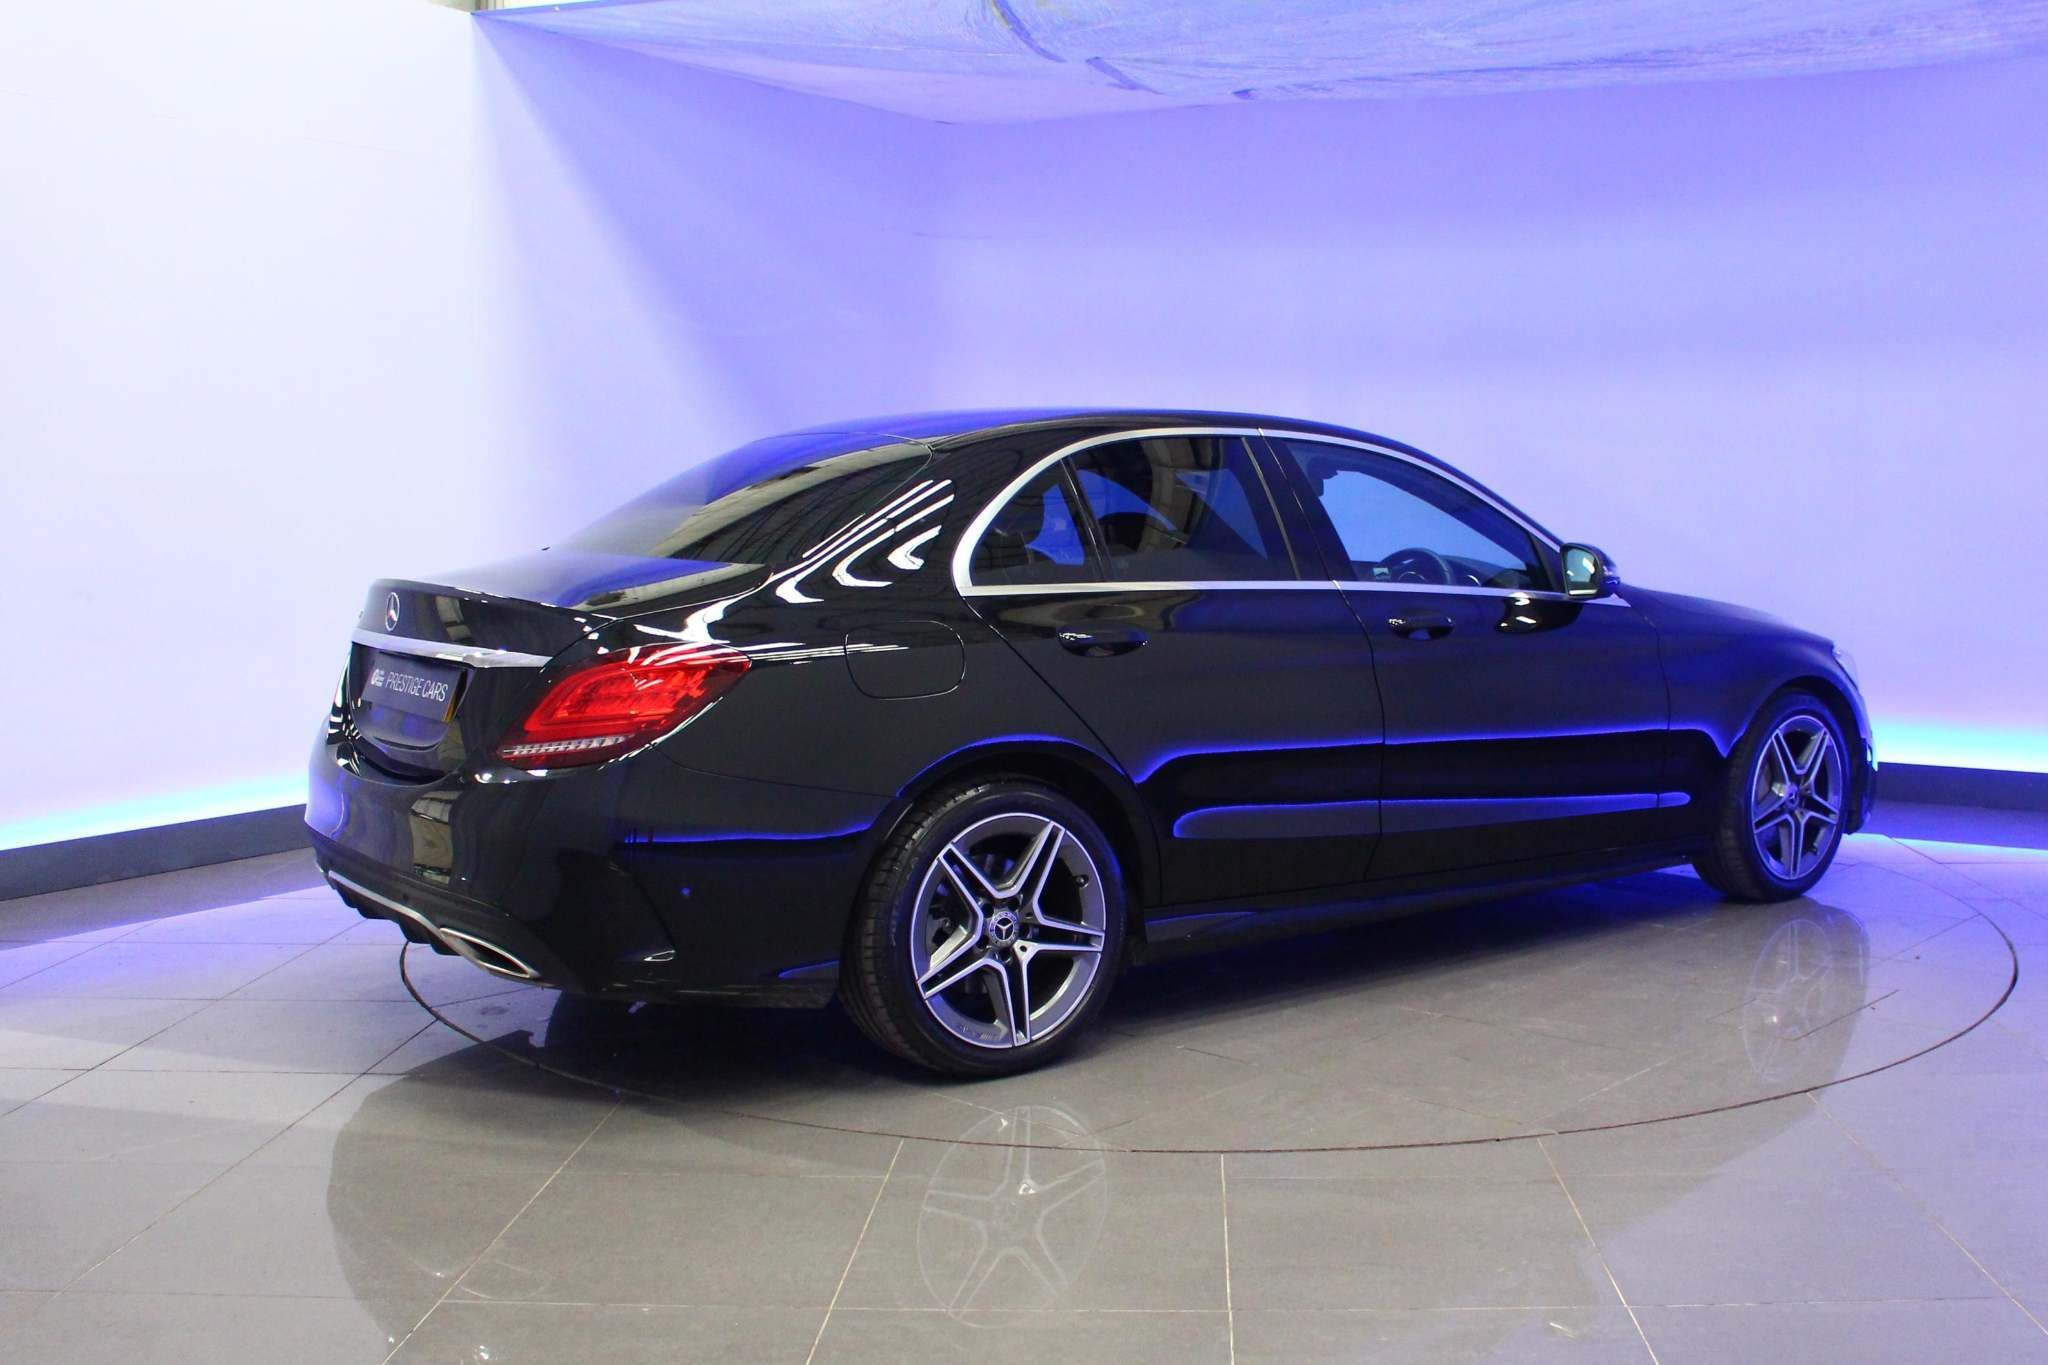 Used Mercedes-Benz C Class 1.5 C200 Eq Boost Amg Line G-Tronic+ (s/s) 4dr